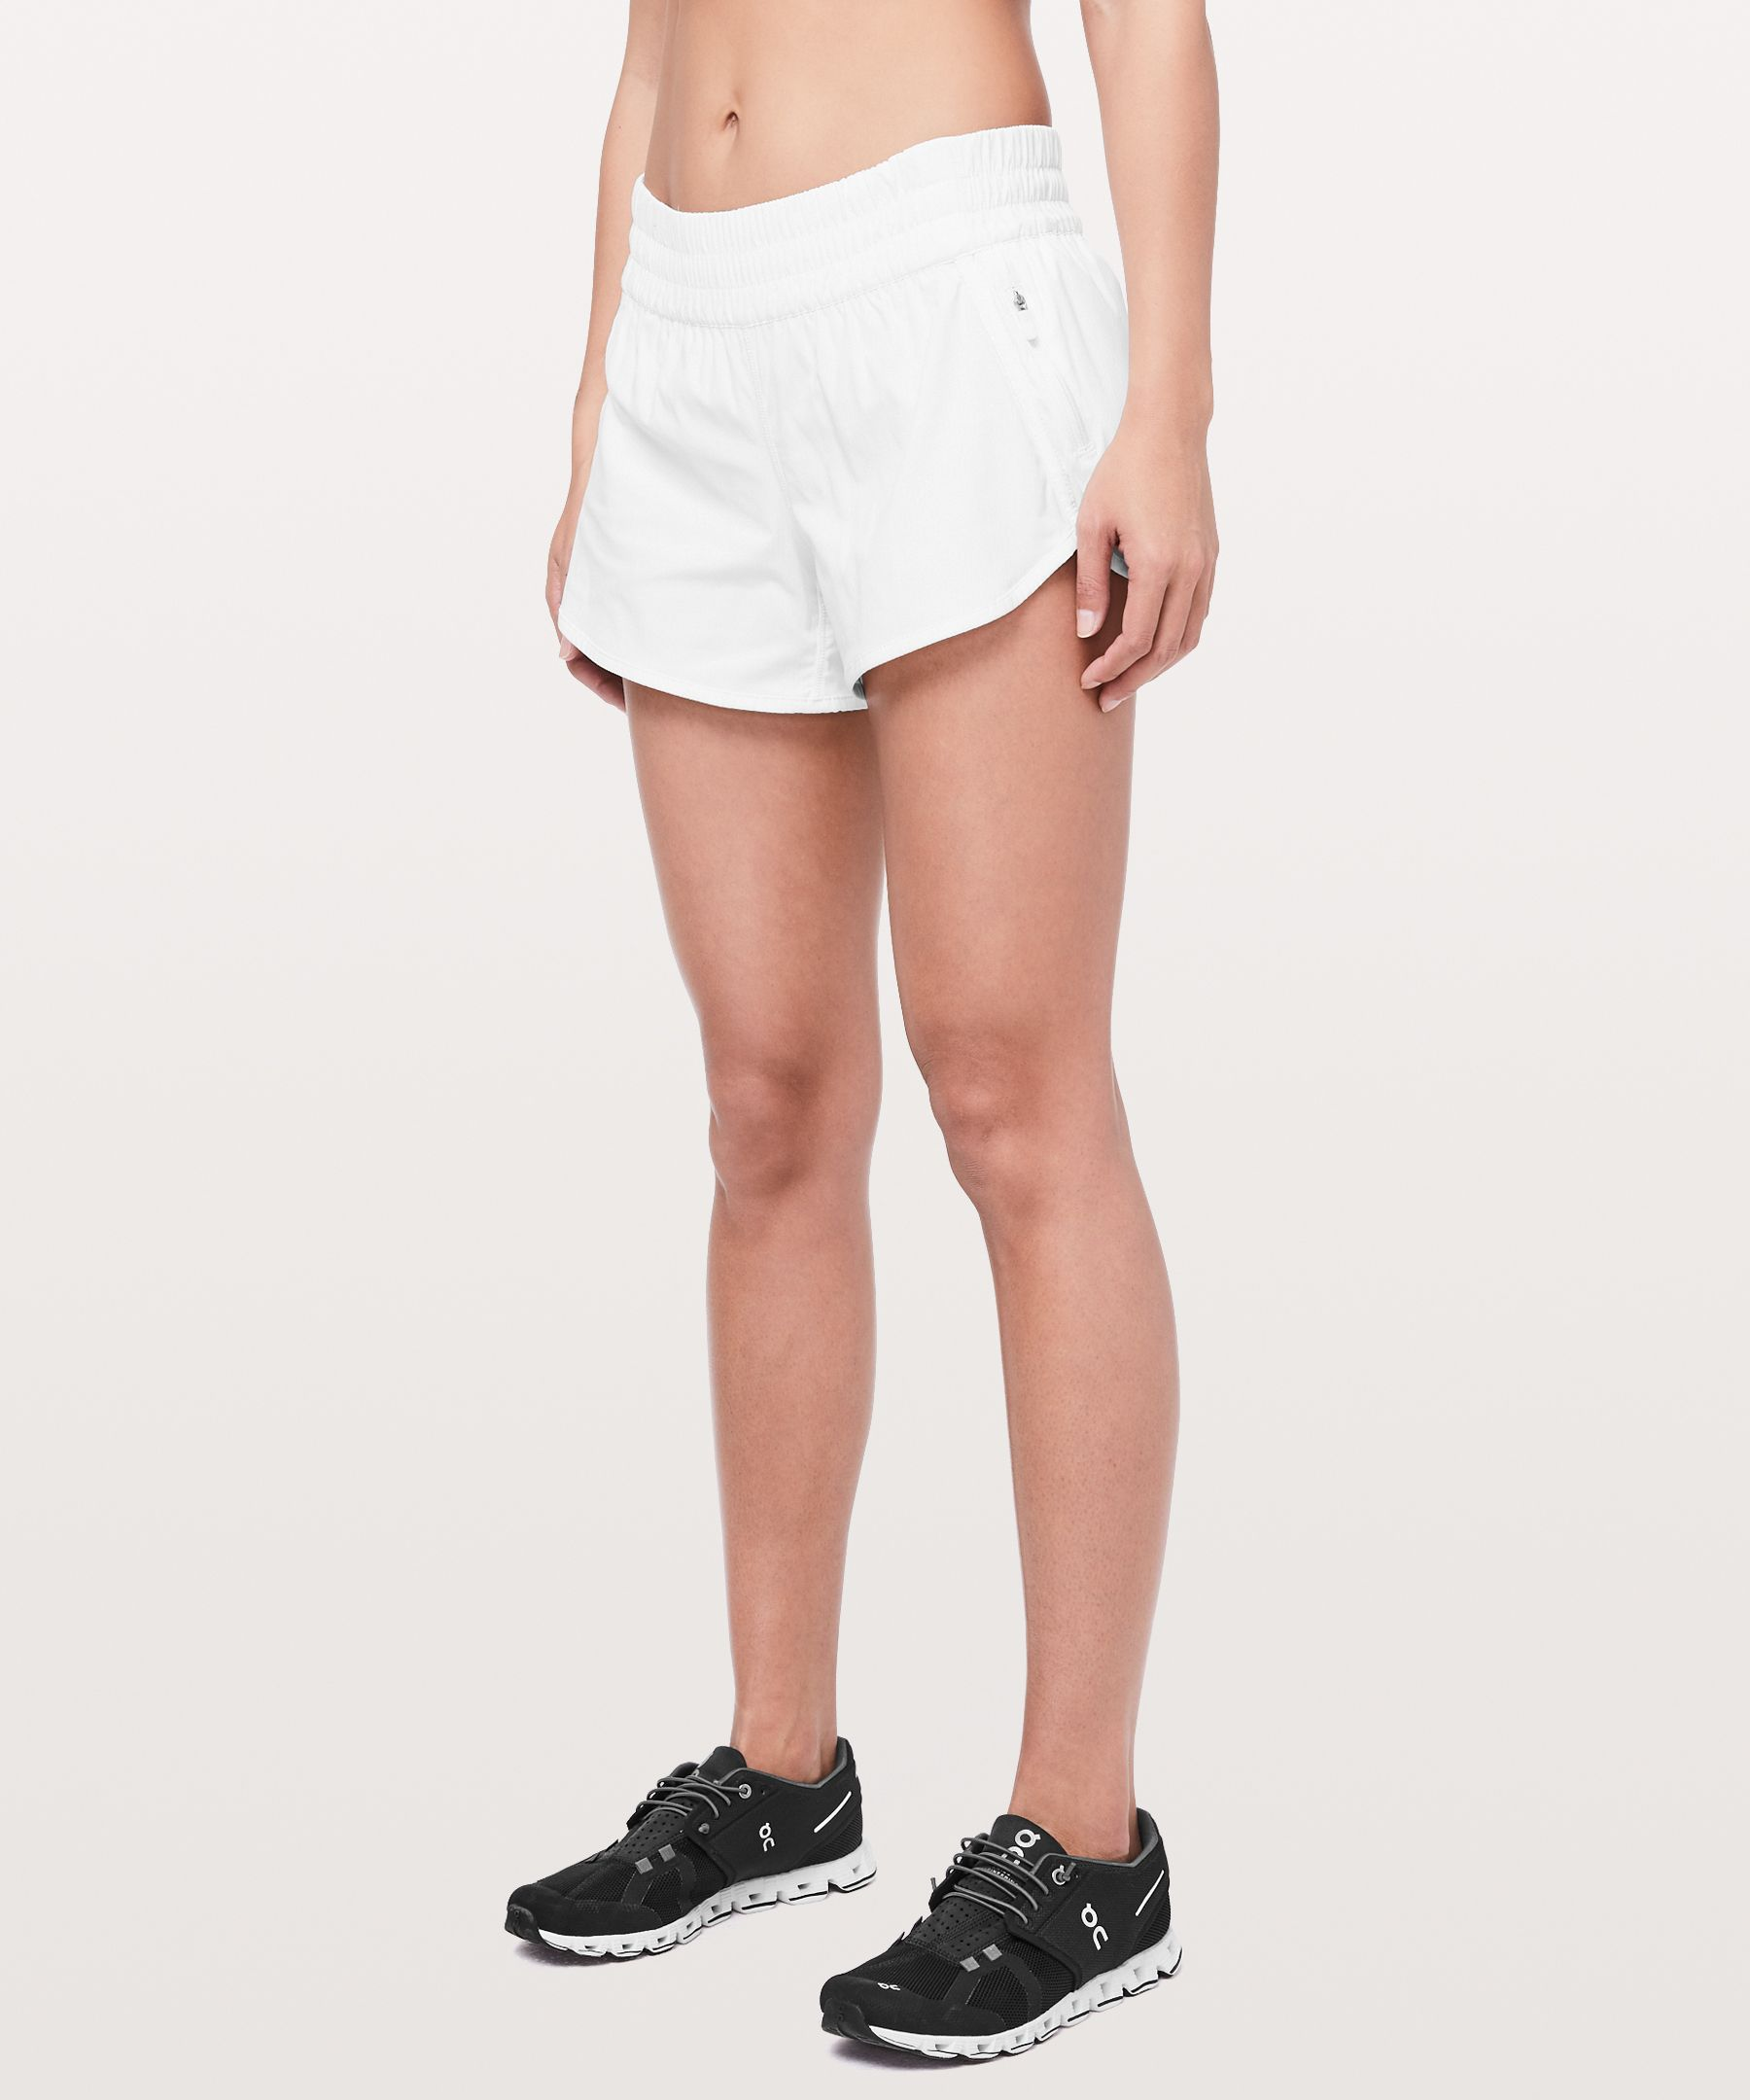 Run for the hills in these  roomy run shorts. We revised  the design lines, but kept the  same fit and fabric that you  already love.  Made with Swift fabric that\\\'s sweat-wicking  and two-way stretch.